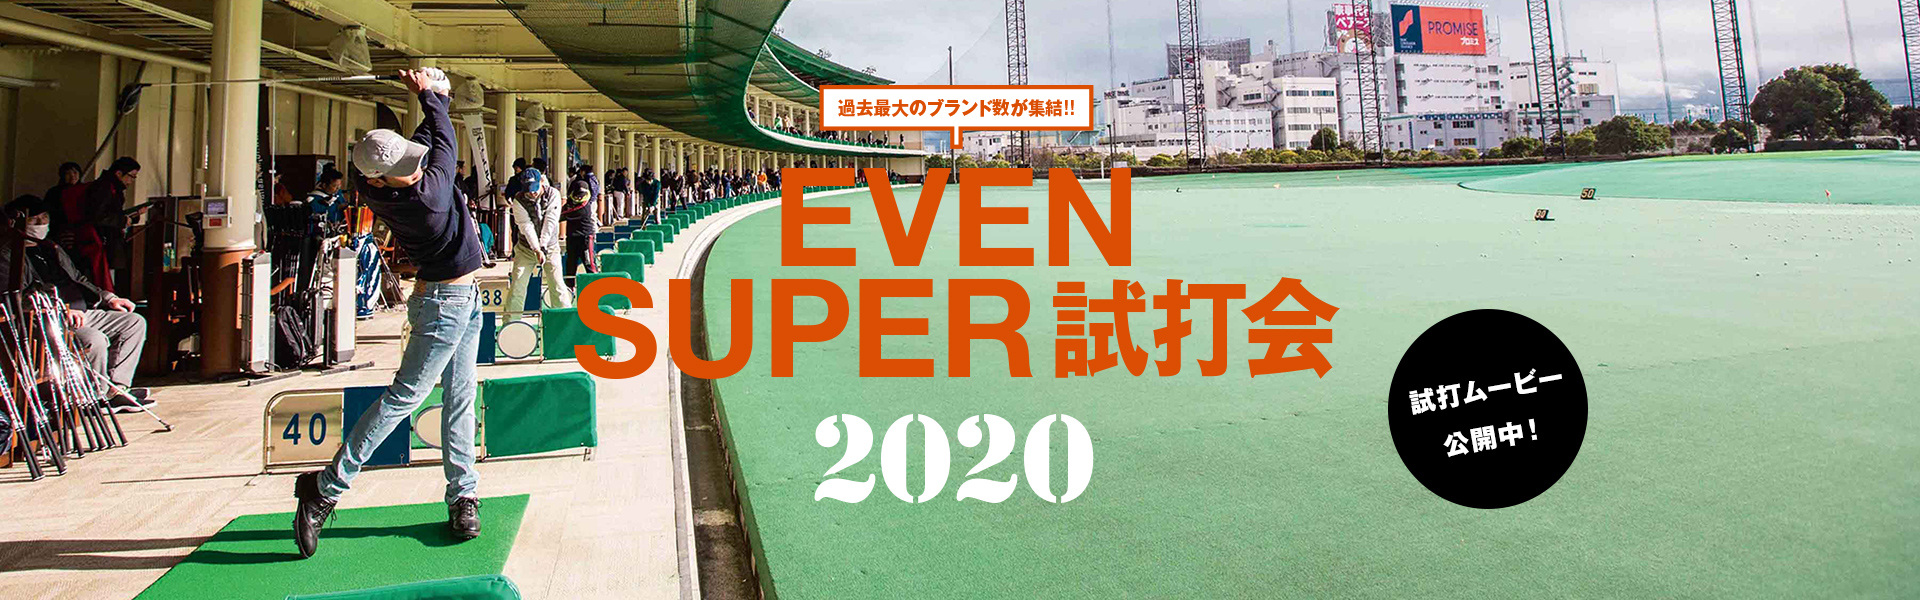 EVEN試打会2020